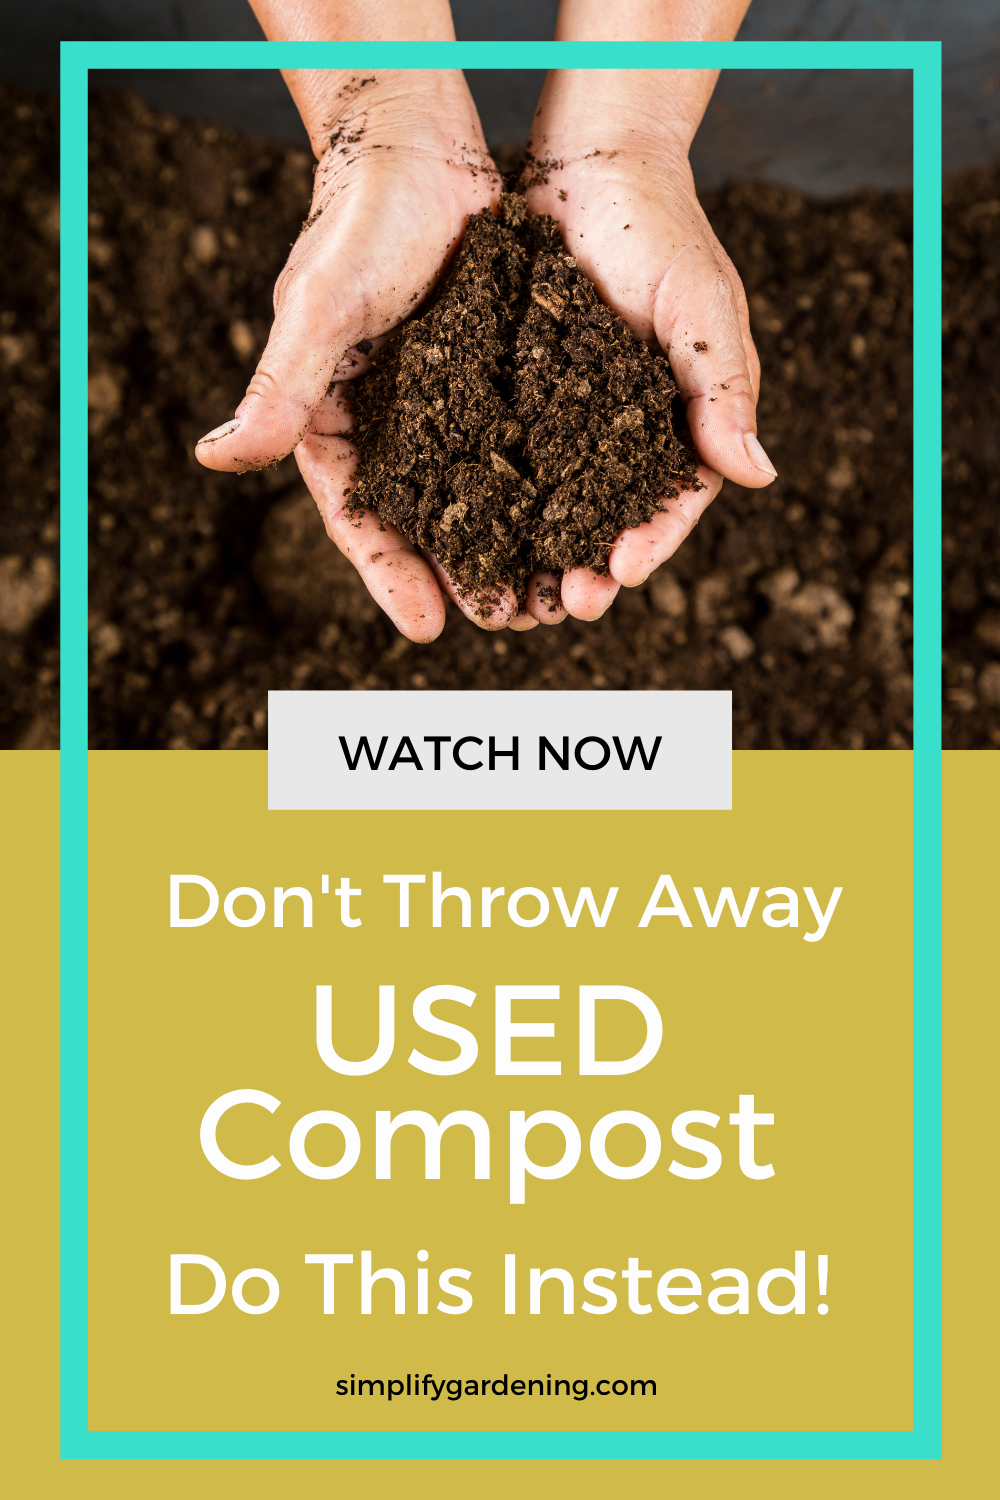 Rejuvenate your compost instead of throwing it away. Make the most of this valuable resource. To many discard old used compost without even knowing it can be used again. #compost #composting #reuse #vegetablegarden #livingsoil #organicgardening #sustainable #gardening #garden #growyourown #usedcompost #rejuvenatecompost #reusecompost #recyclecompost #recycle #organic #mulch #pottingsoil